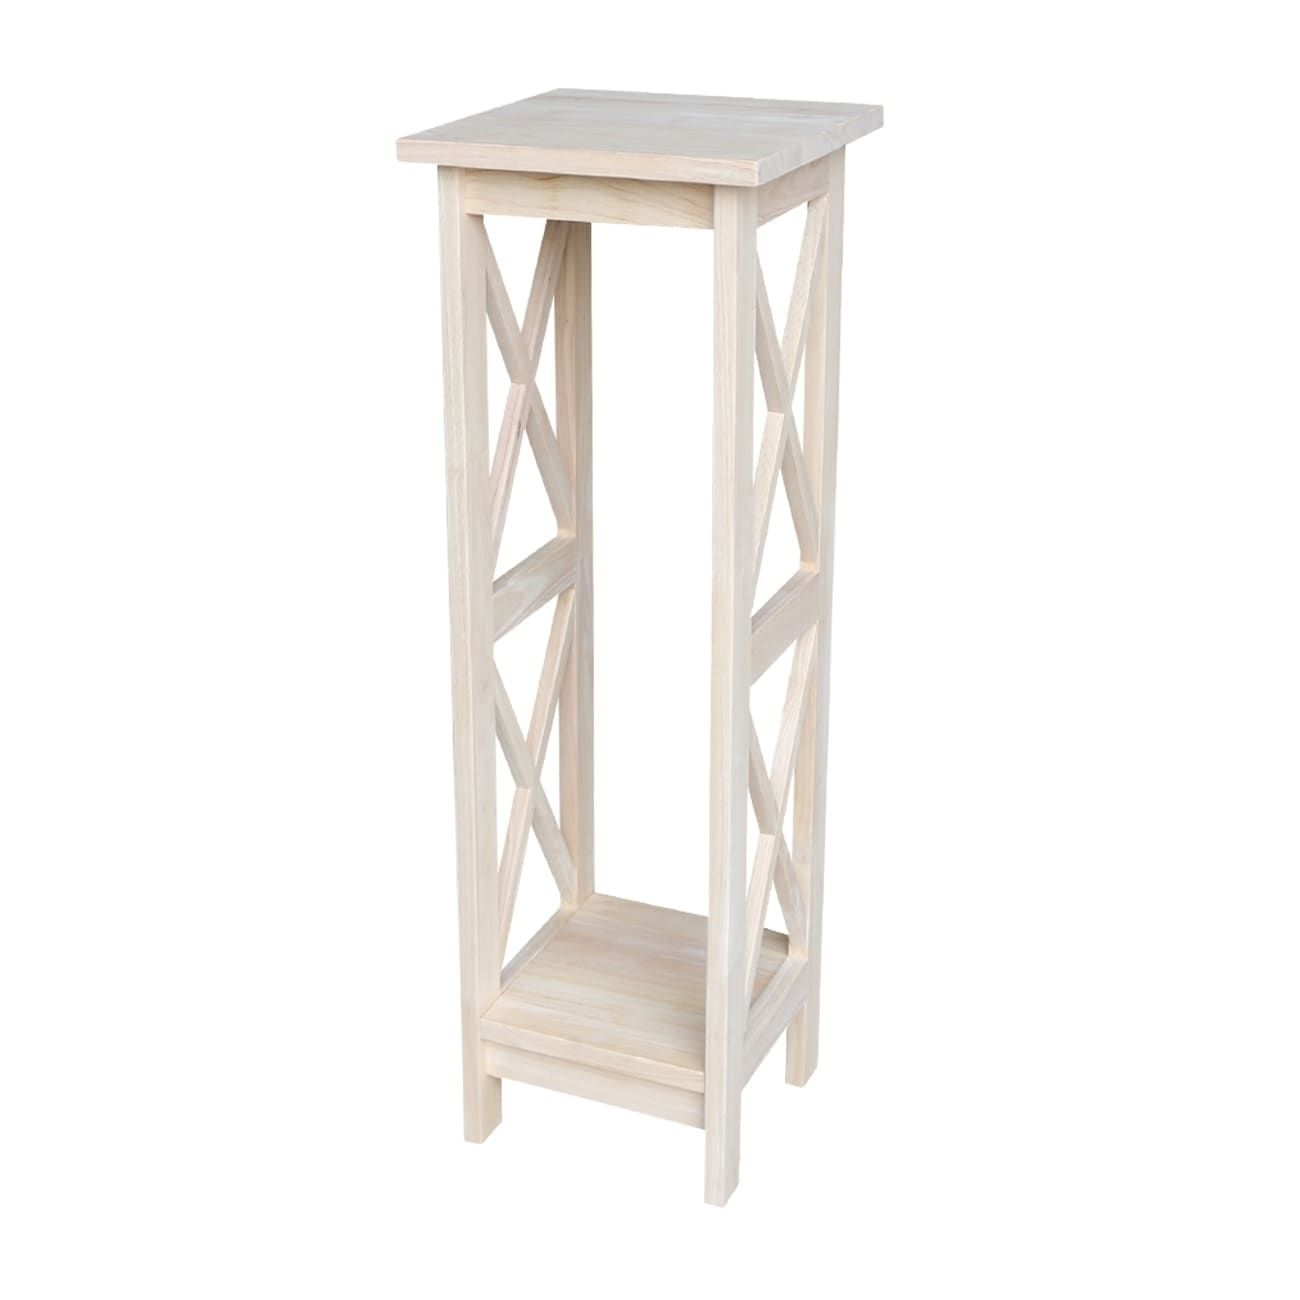 International Concepts 36 Inch X Sided Plant Stand Natural Wood Ot 3069x